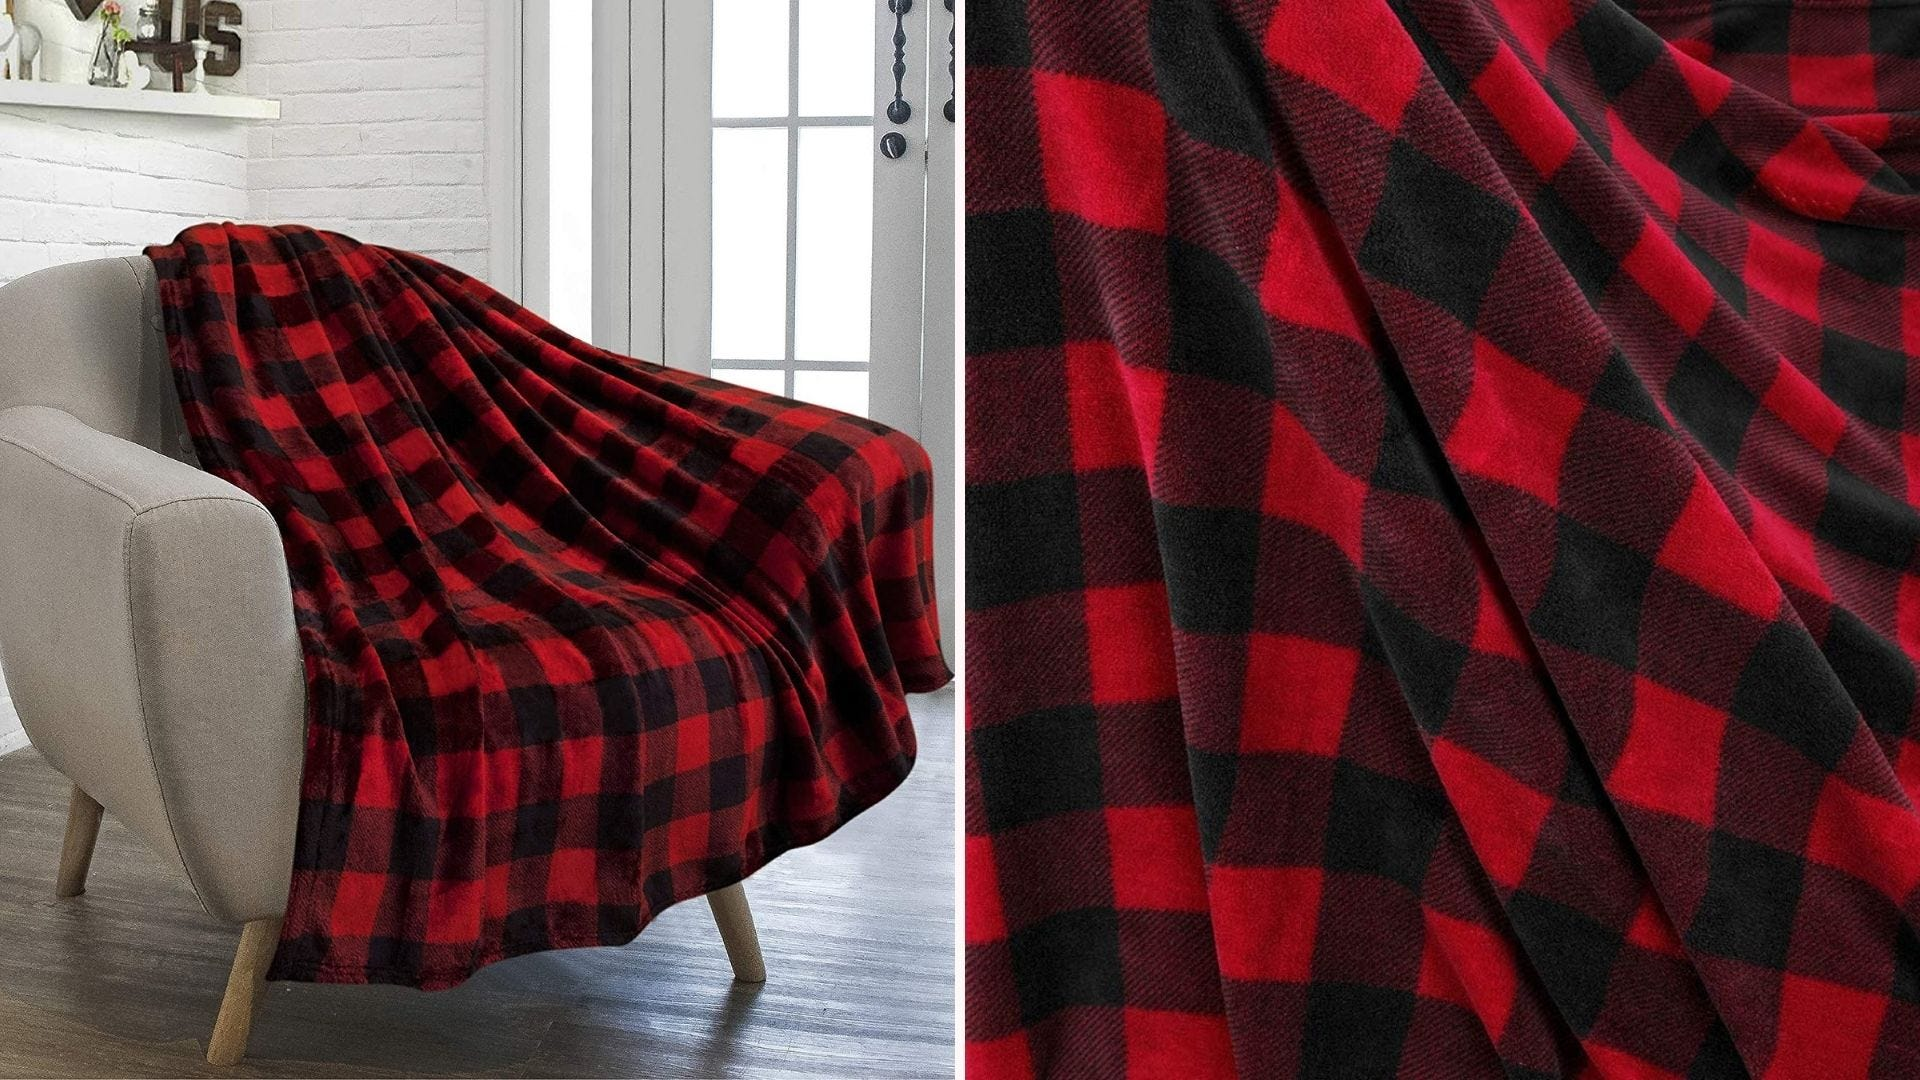 A buffoalo check plaid throw on a chair with a closeup of the pattern and fabric.